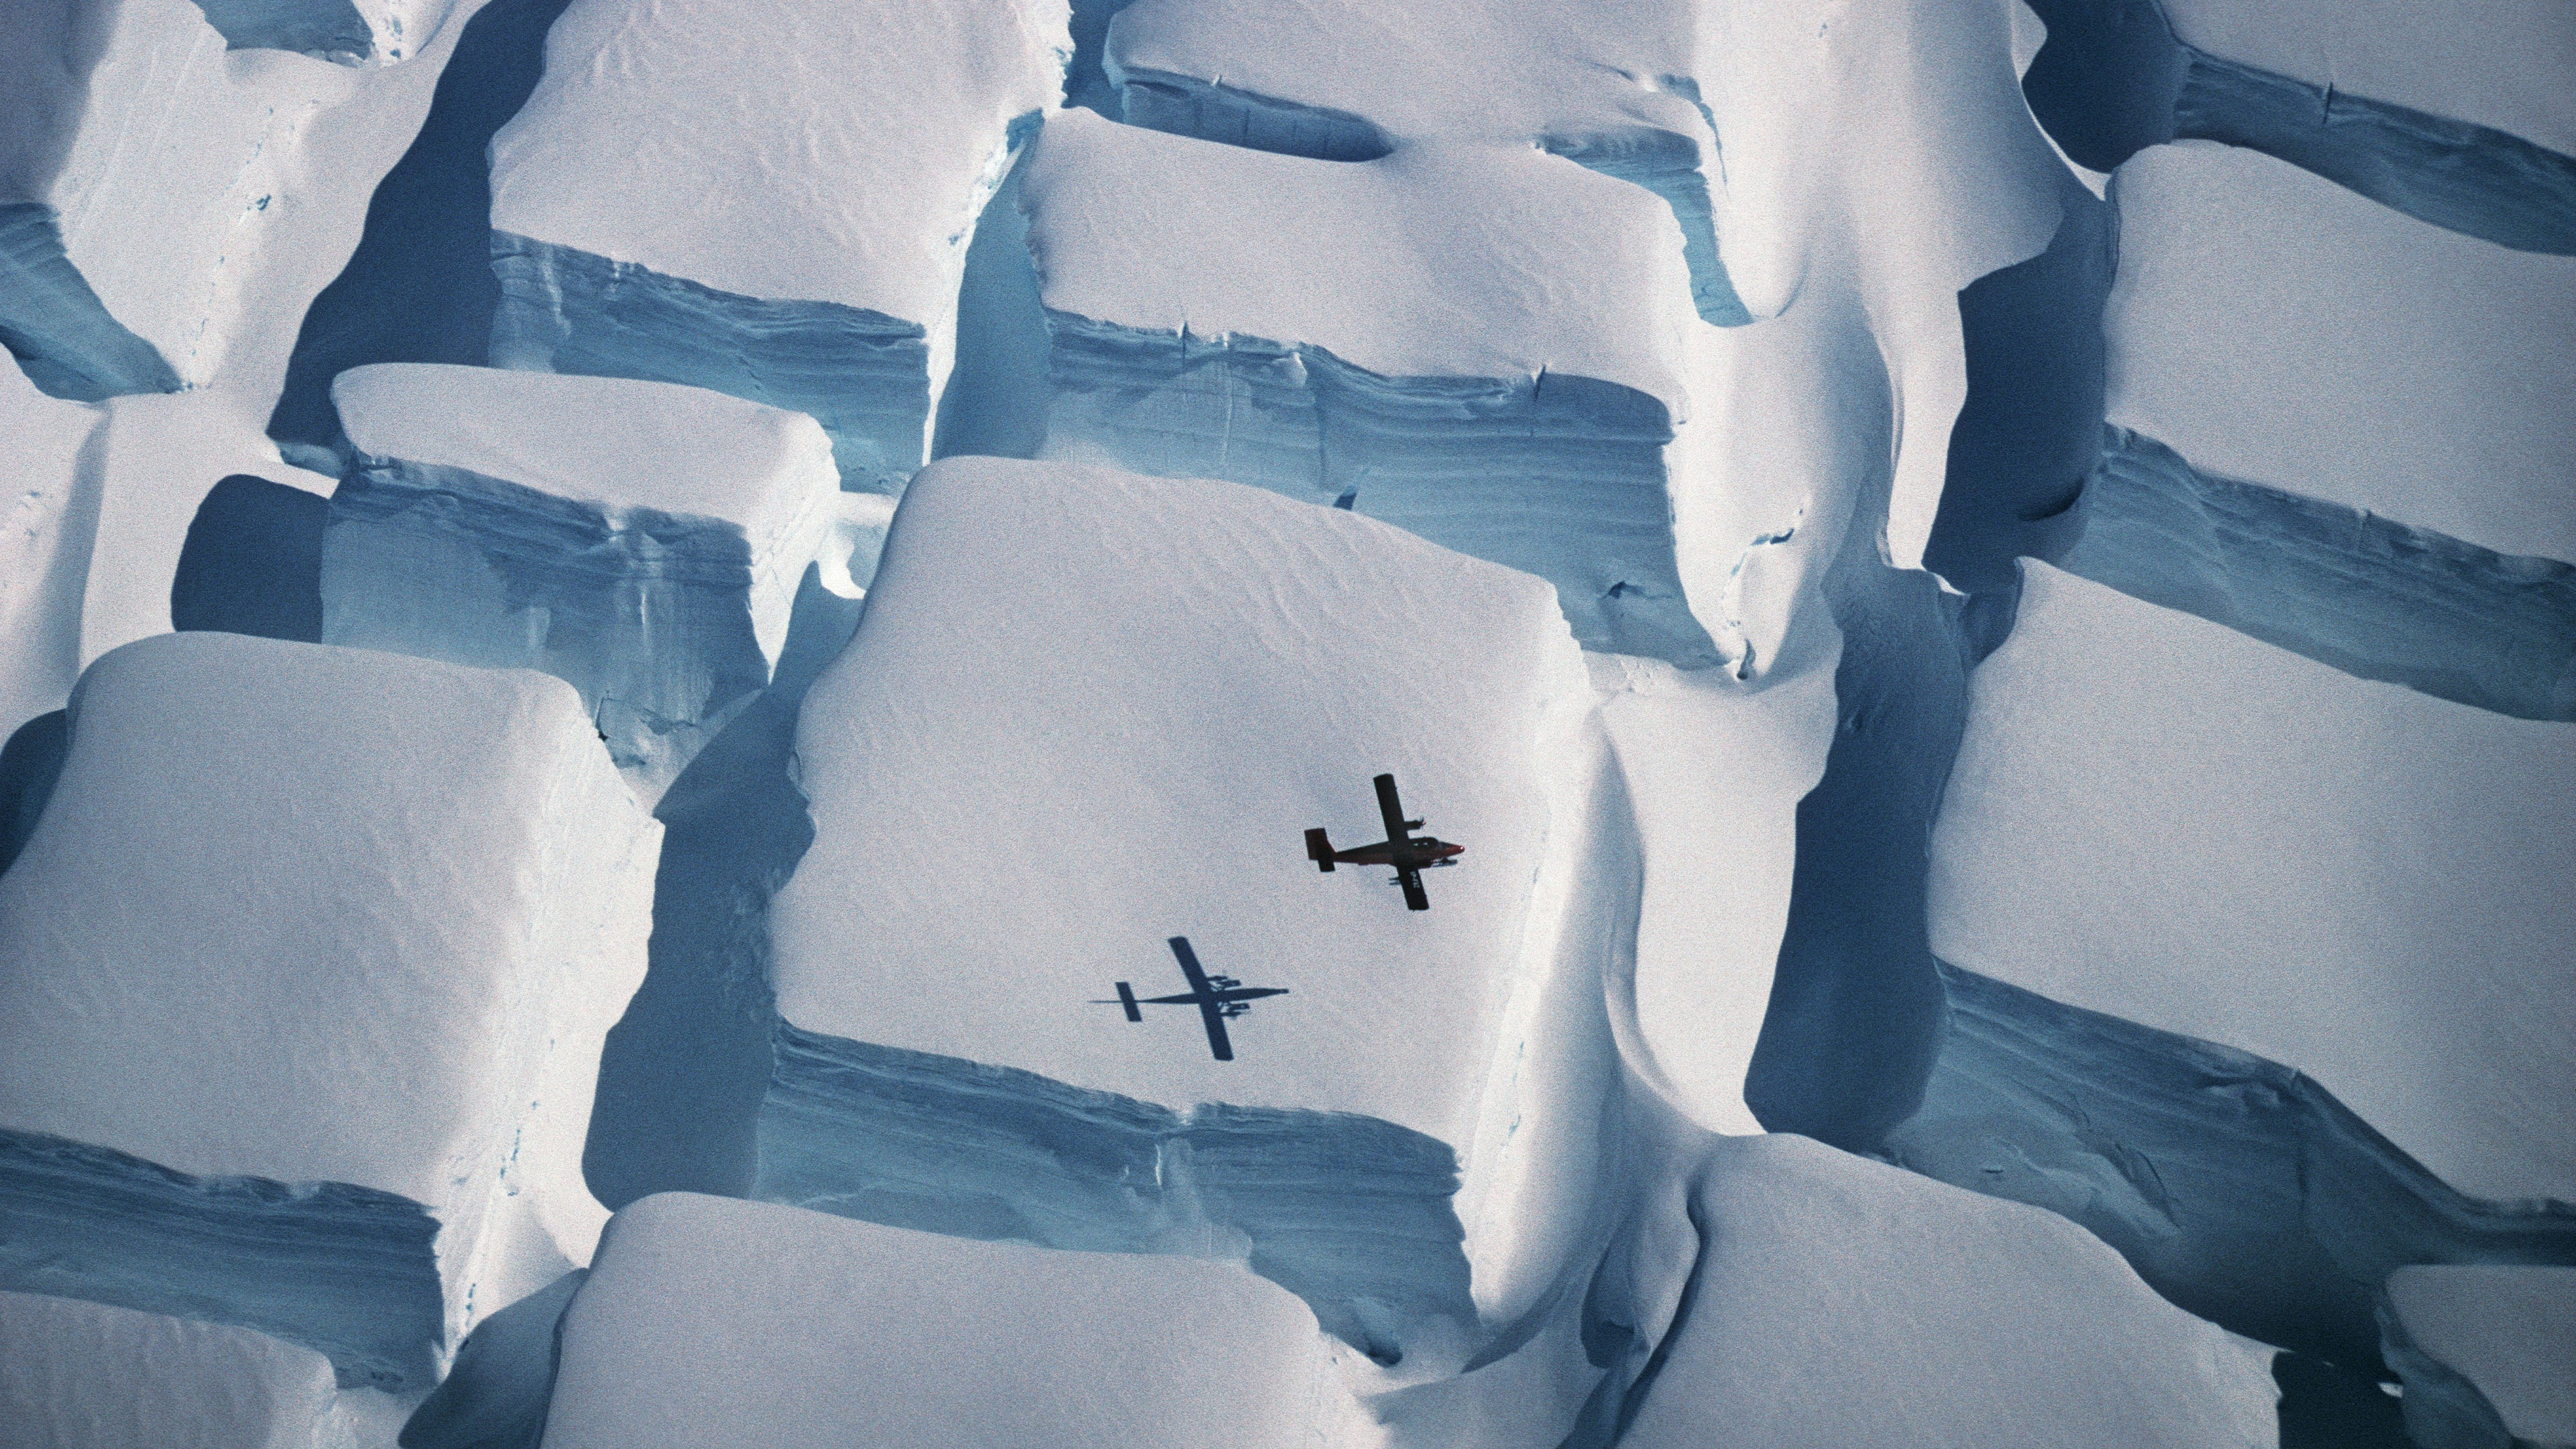 Photograph of sugar cube-shaped ice formations wins Royal Society Publishing prize